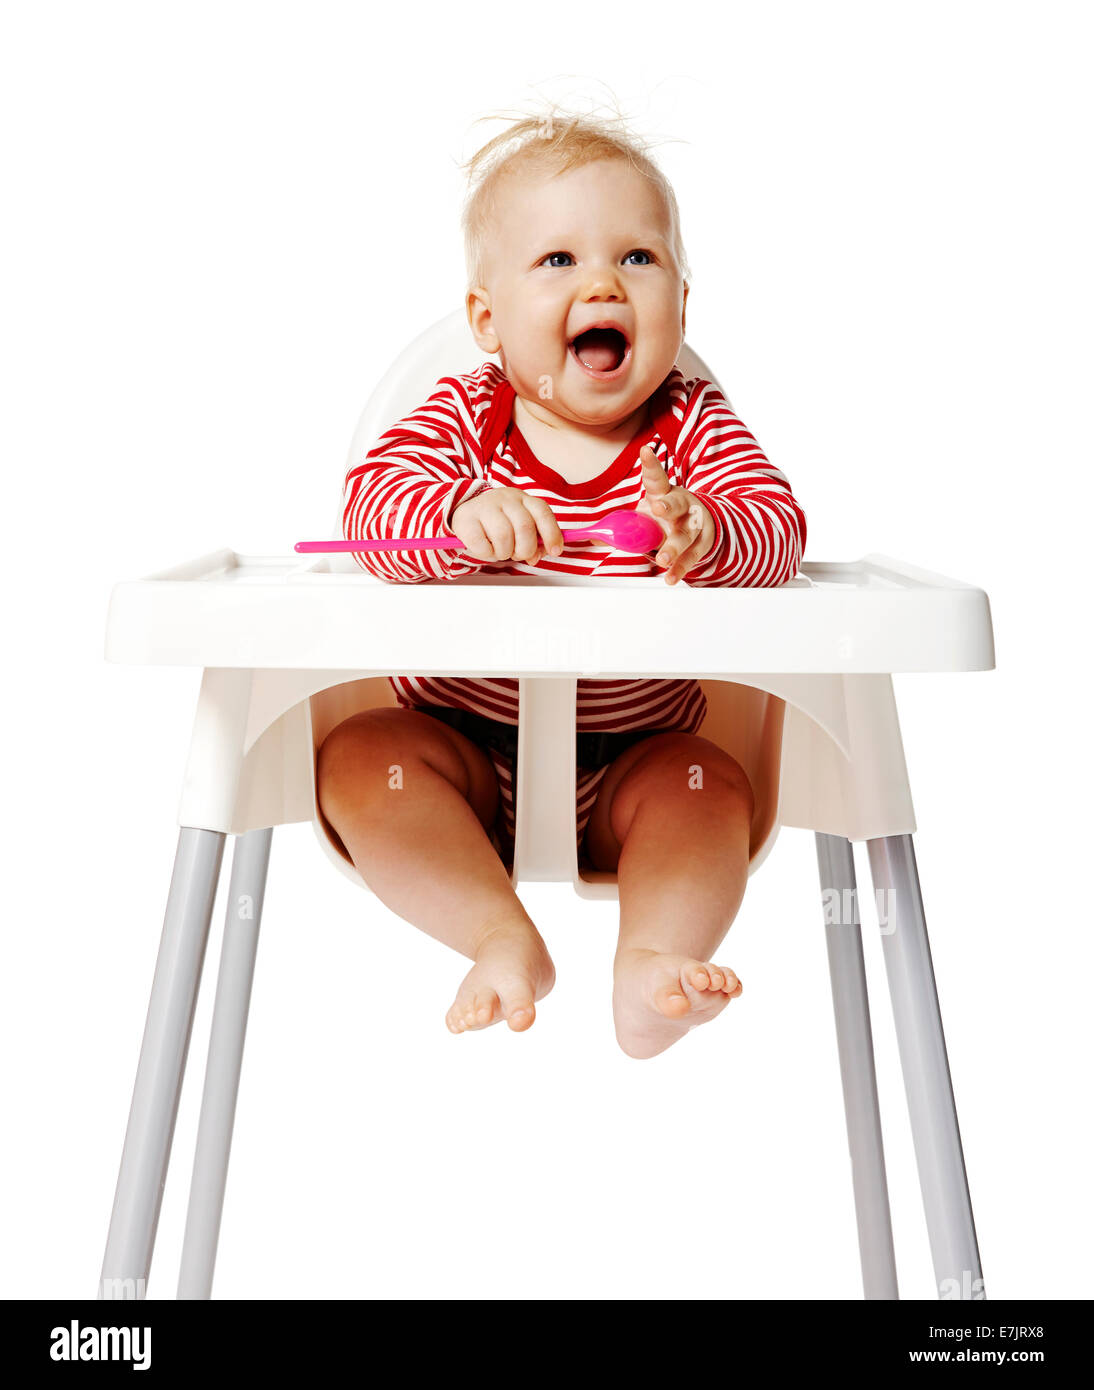 Baby sitting on chair and waiting for dinner. Isolated on white Background. - Stock Image